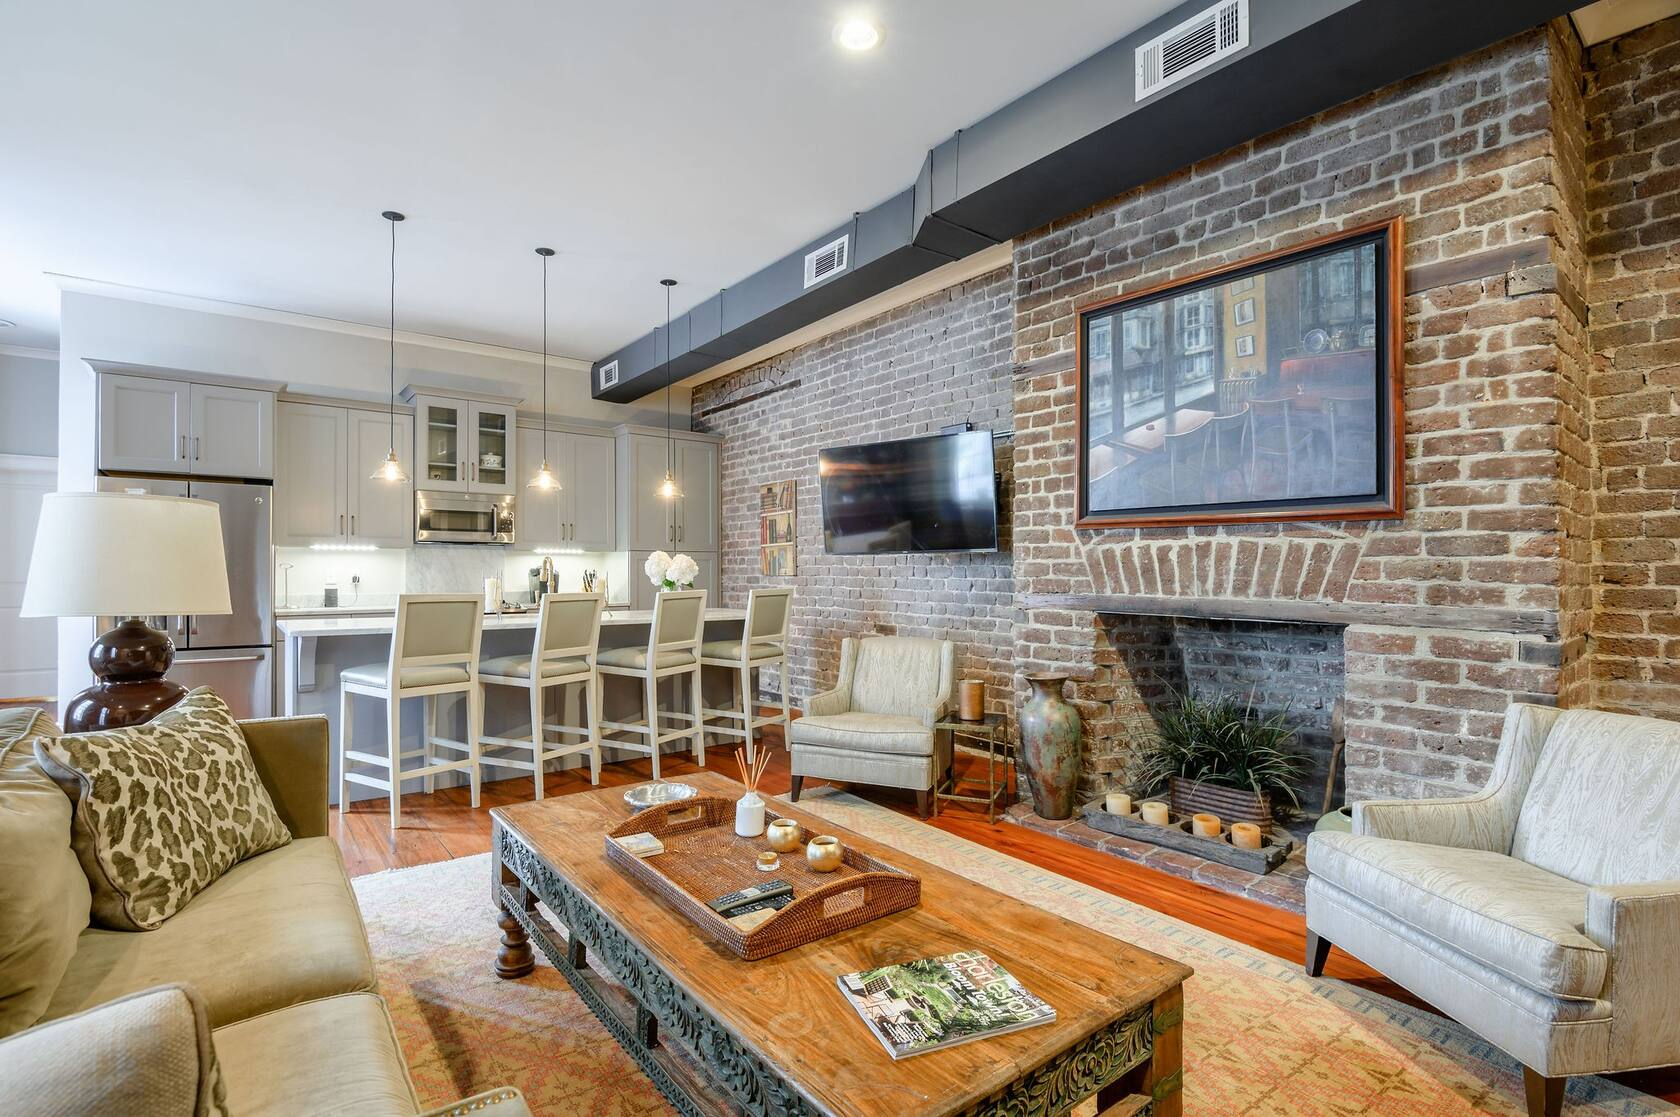 AirBnB's for a Family Trip to Charleston